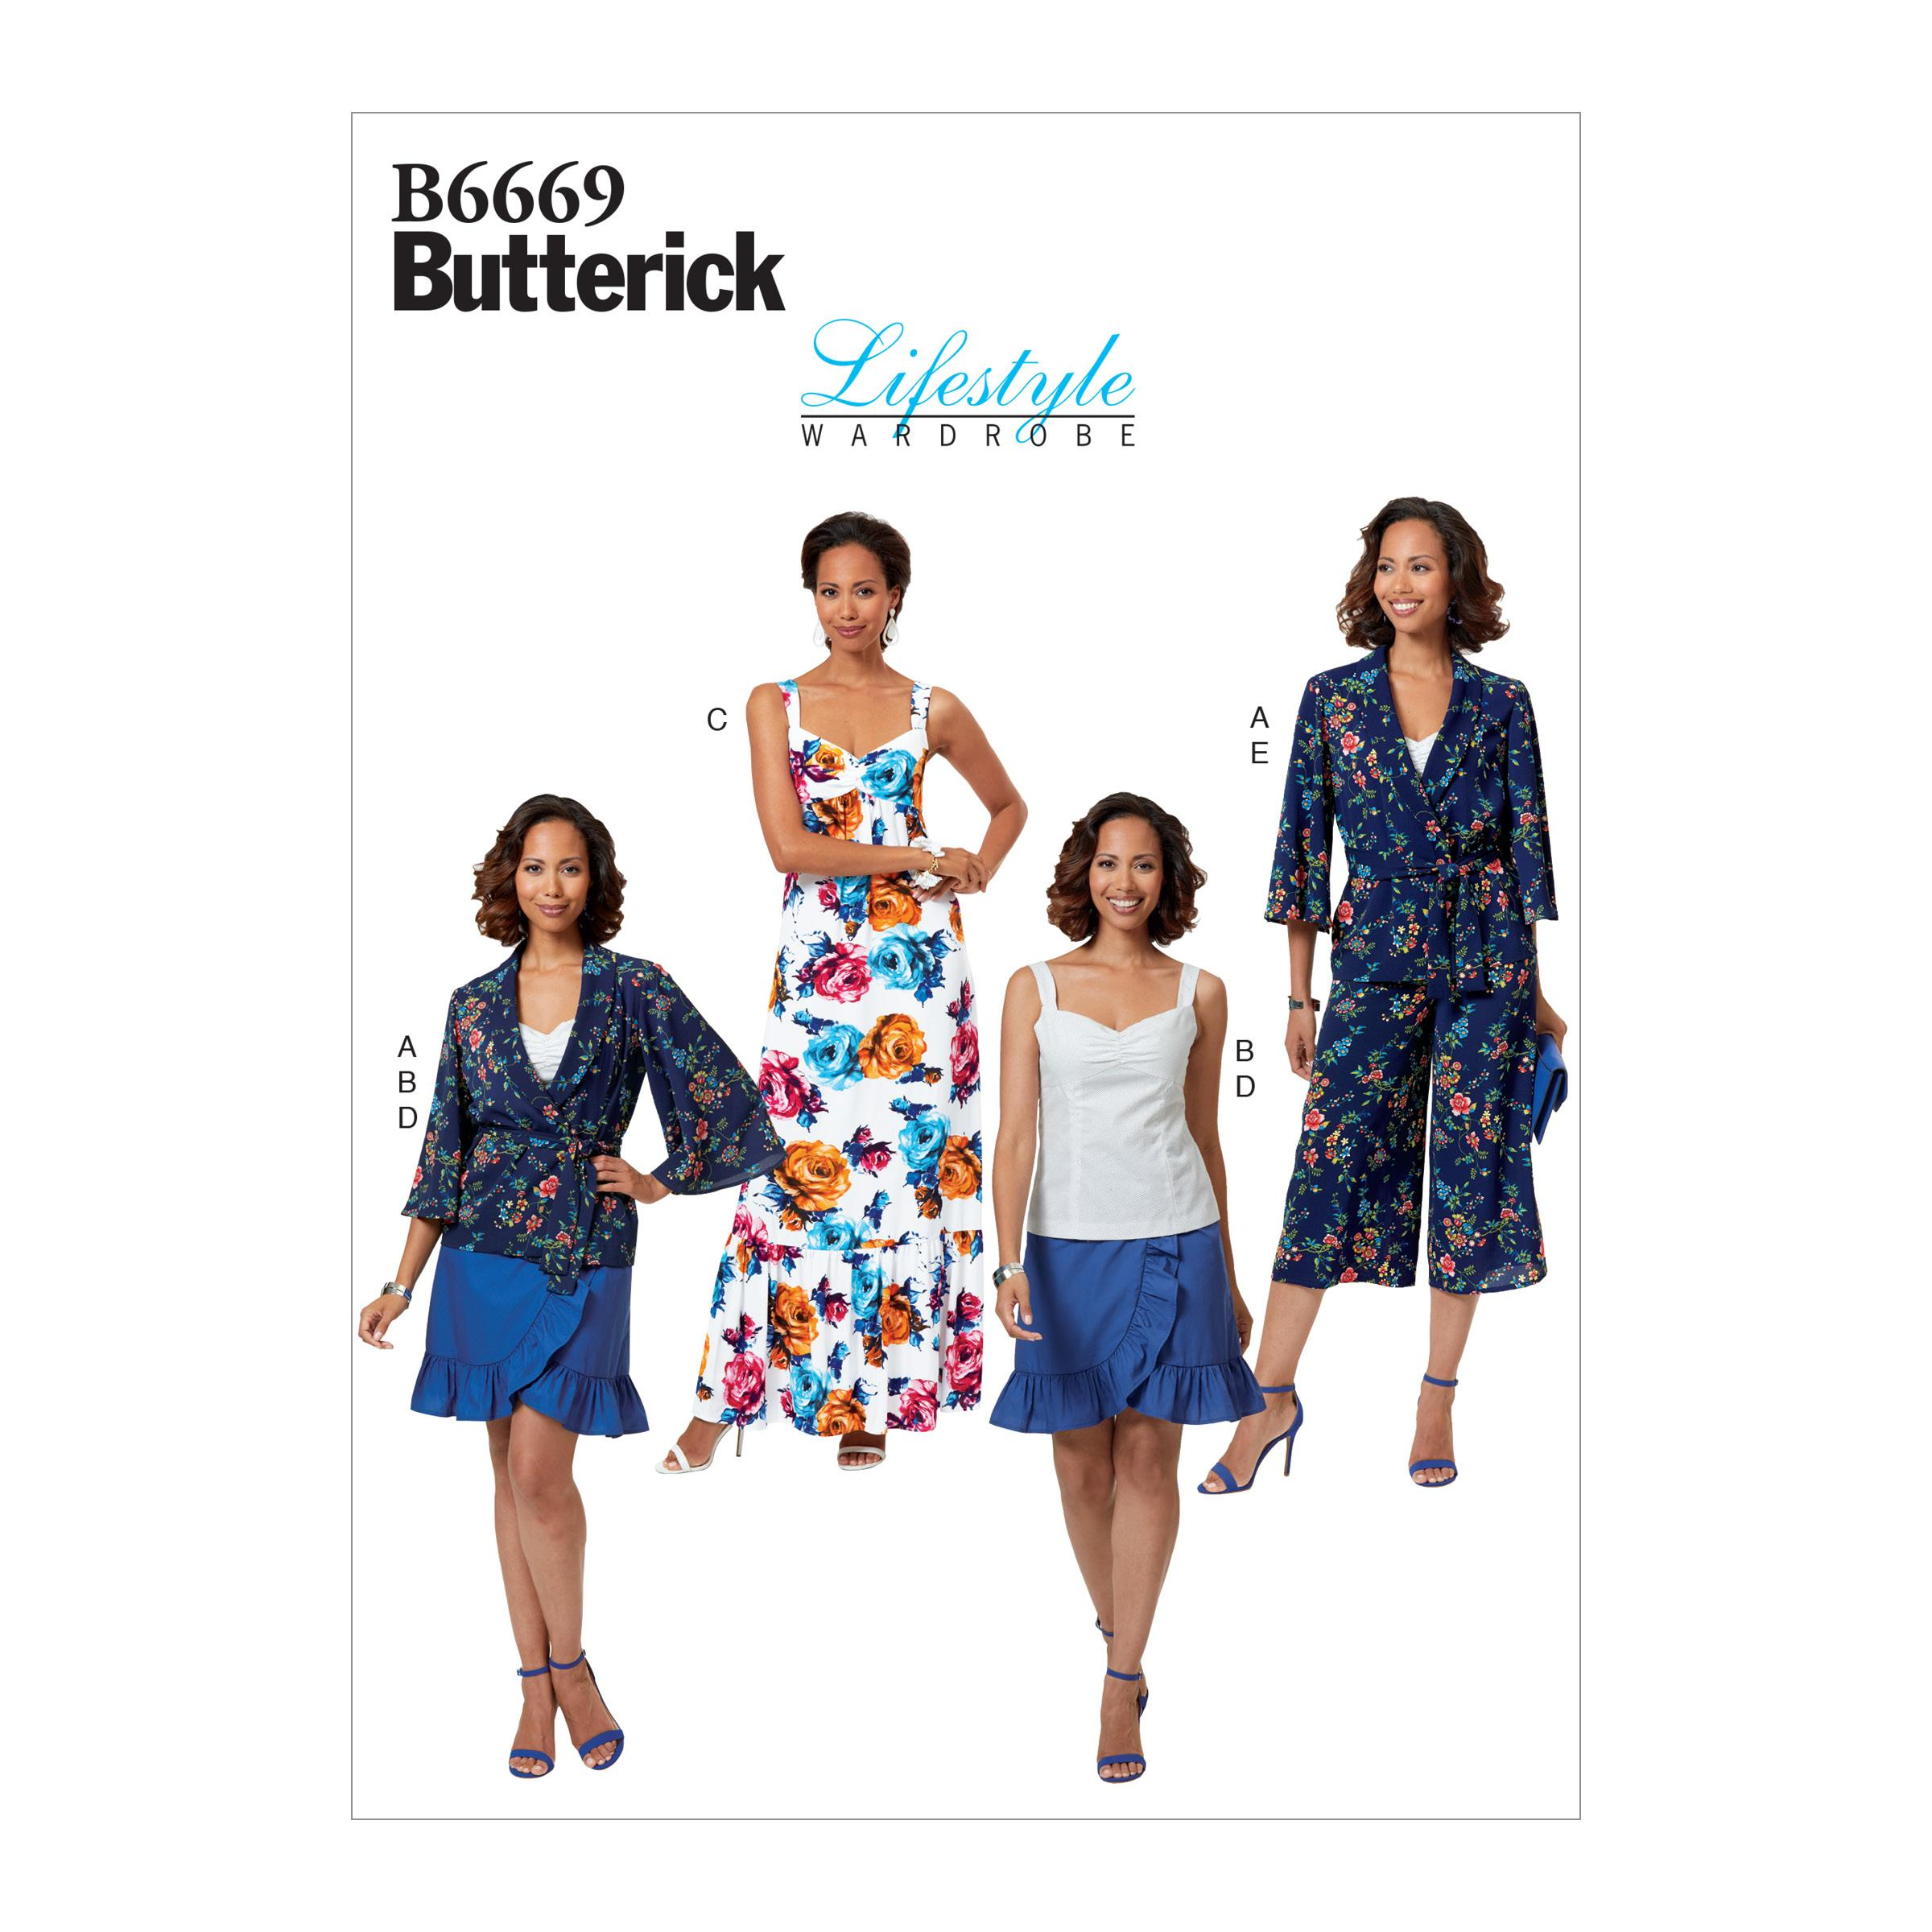 Butterick B6669 Misses'/Miss Petite Jacket, Sash, Top, Dress, Skirt and Pants